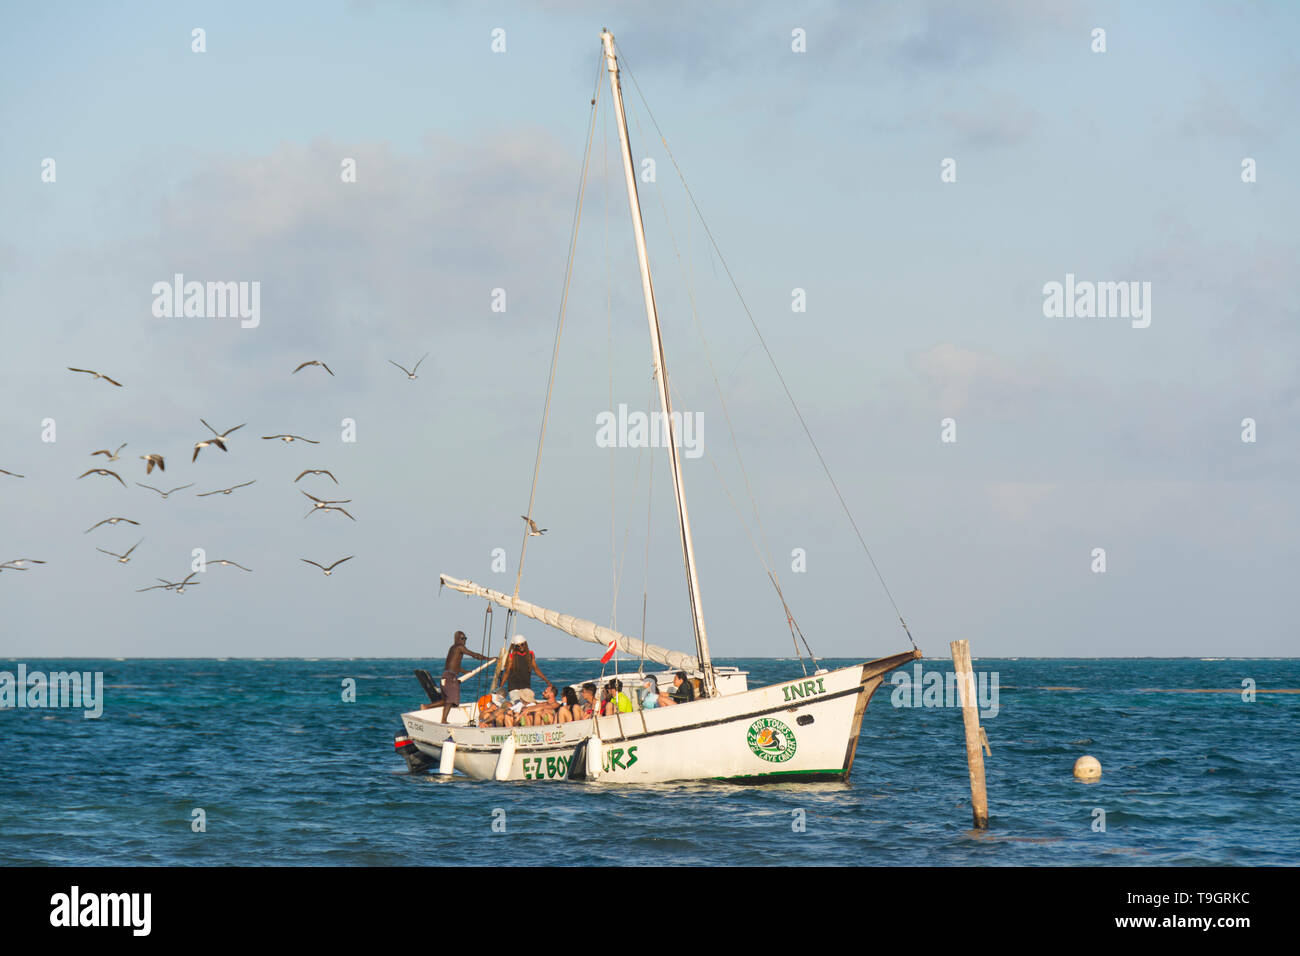 Sailing cruise tours at Caye Caulker, Belize - Stock Image